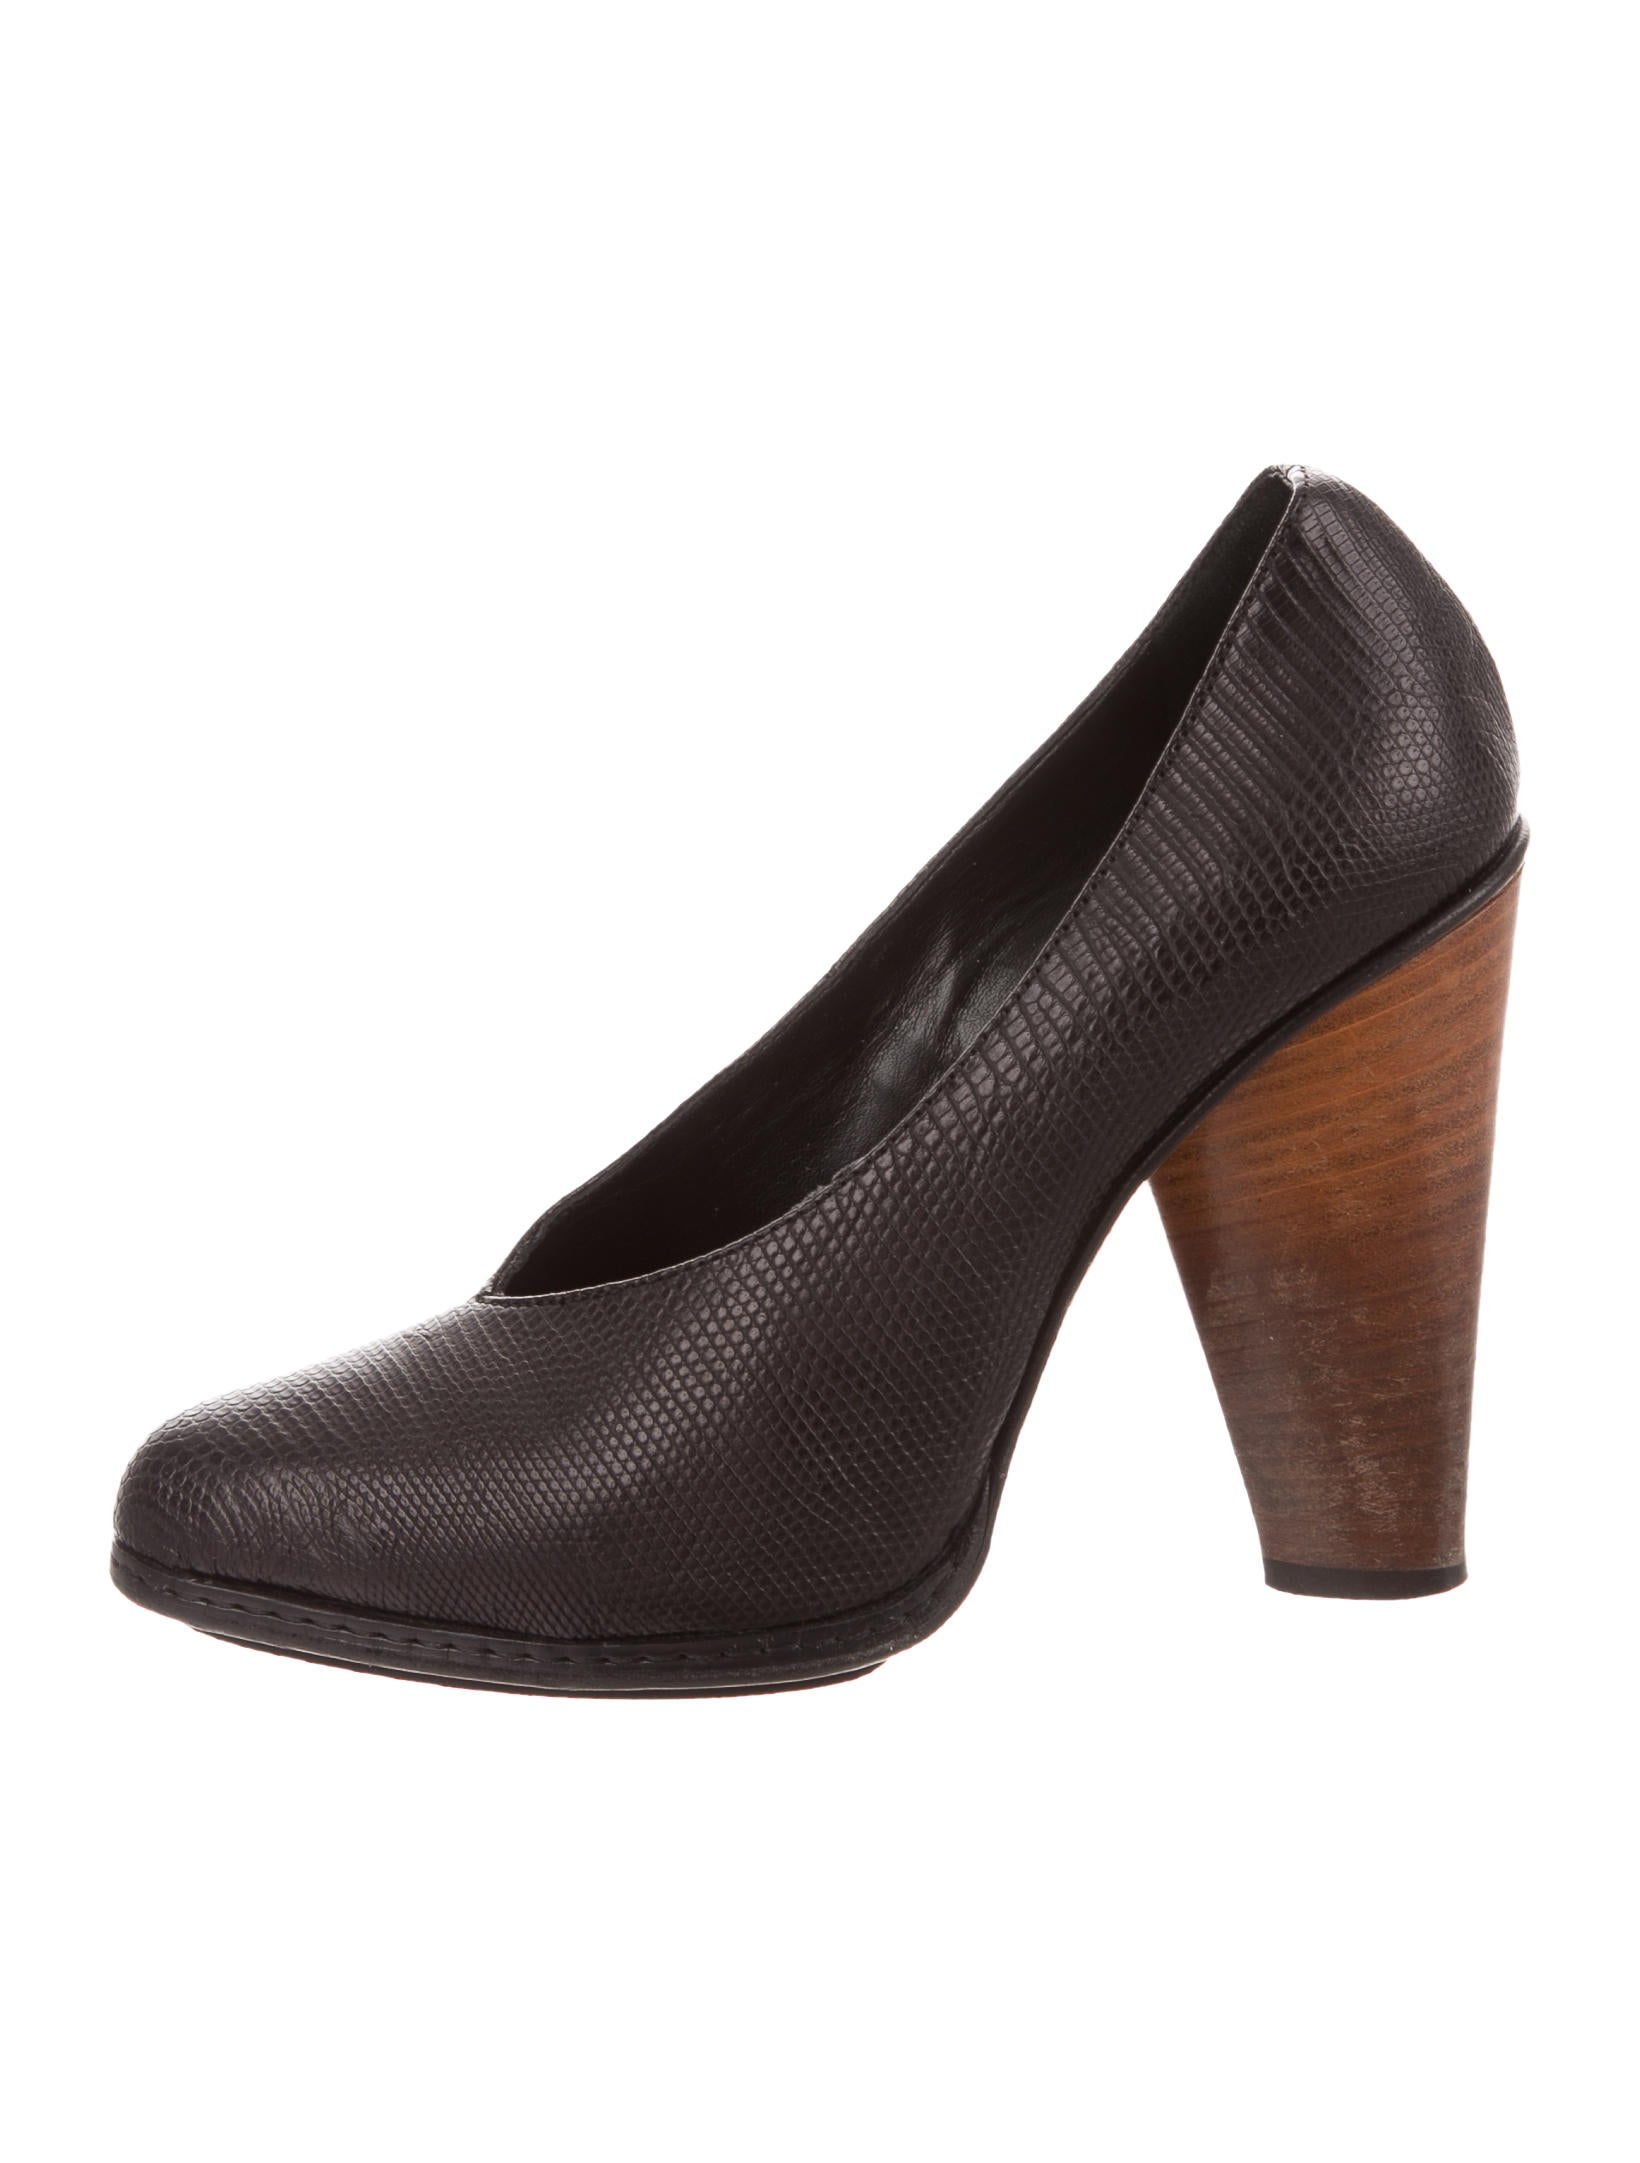 with paypal sale online Derek Lam Leather Semi Pointed-Toe Pumps sale very cheap cheap sale pictures cheap sale best place pmiCow